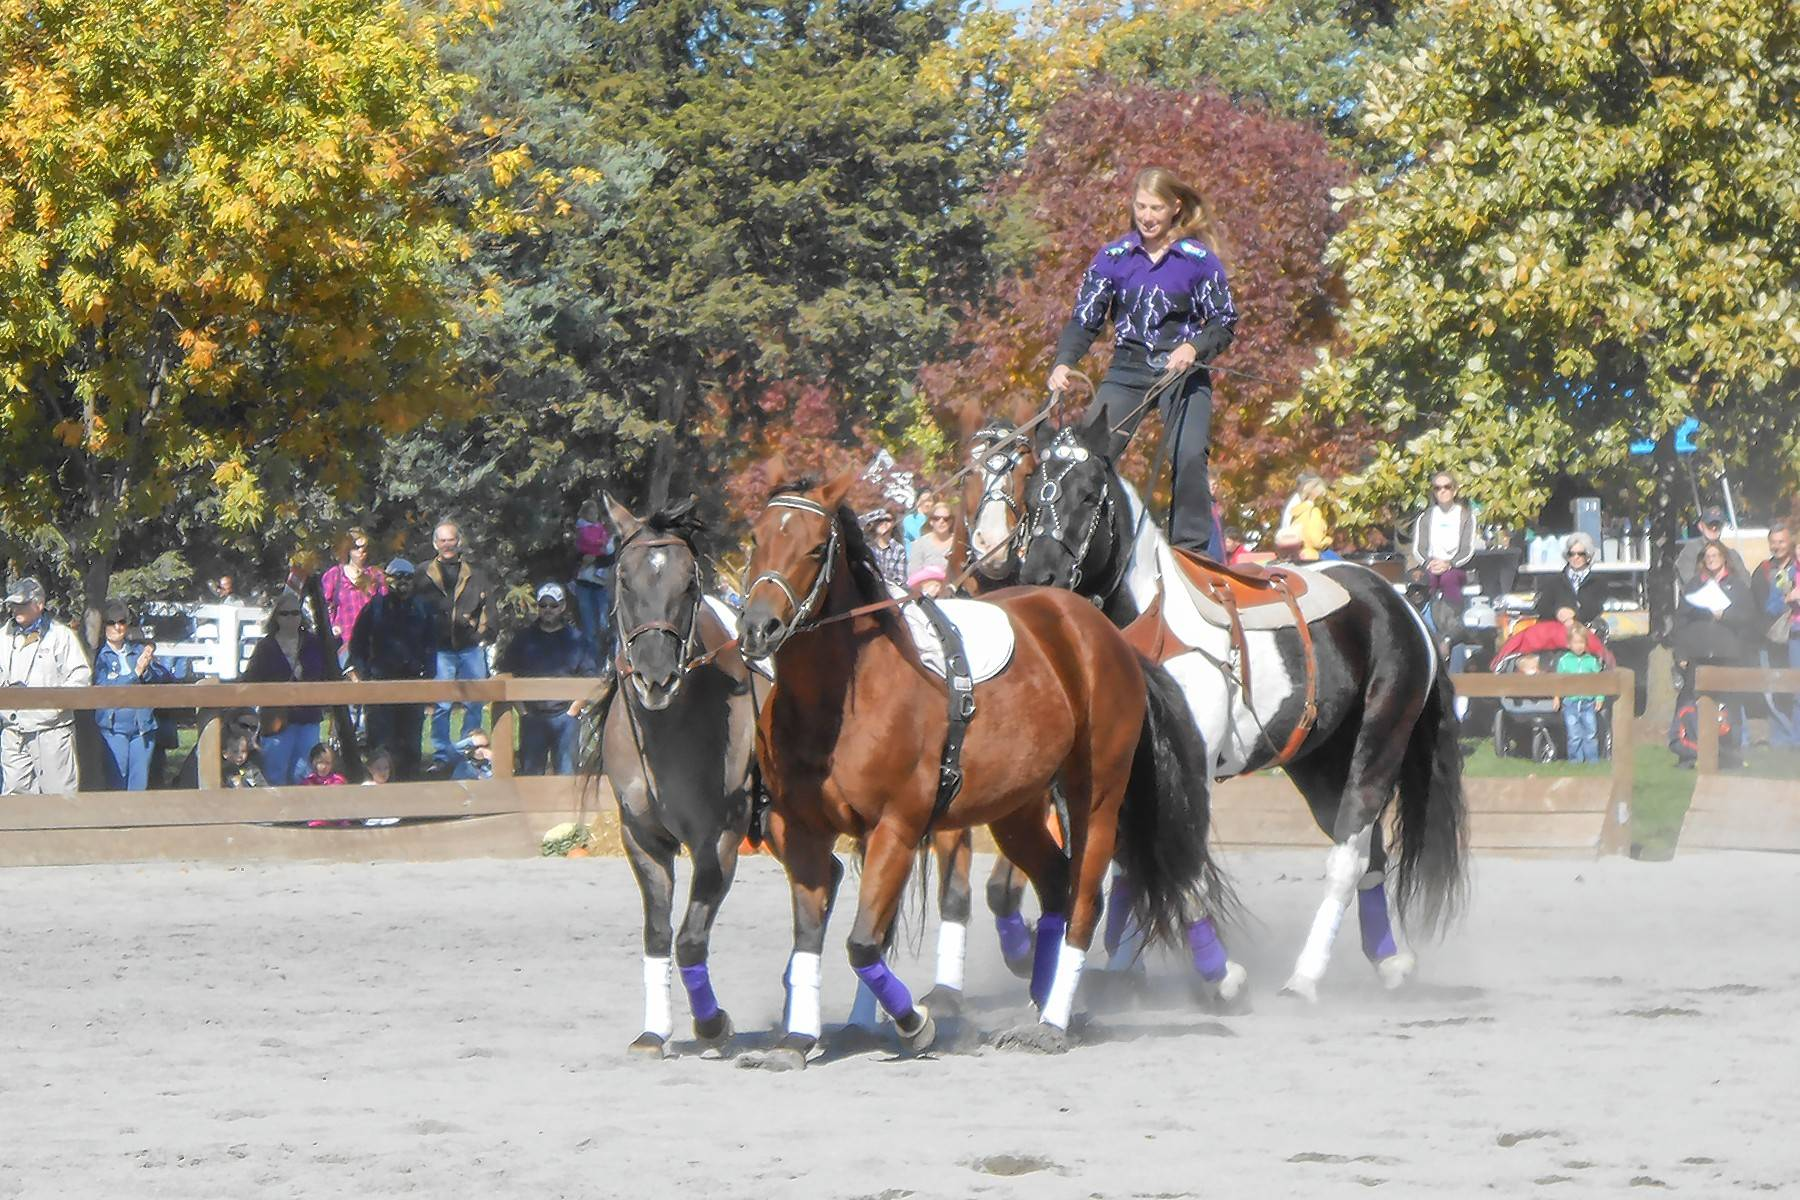 The Danada Fall Festival includes equestrian performances and a parade of horse breeds.